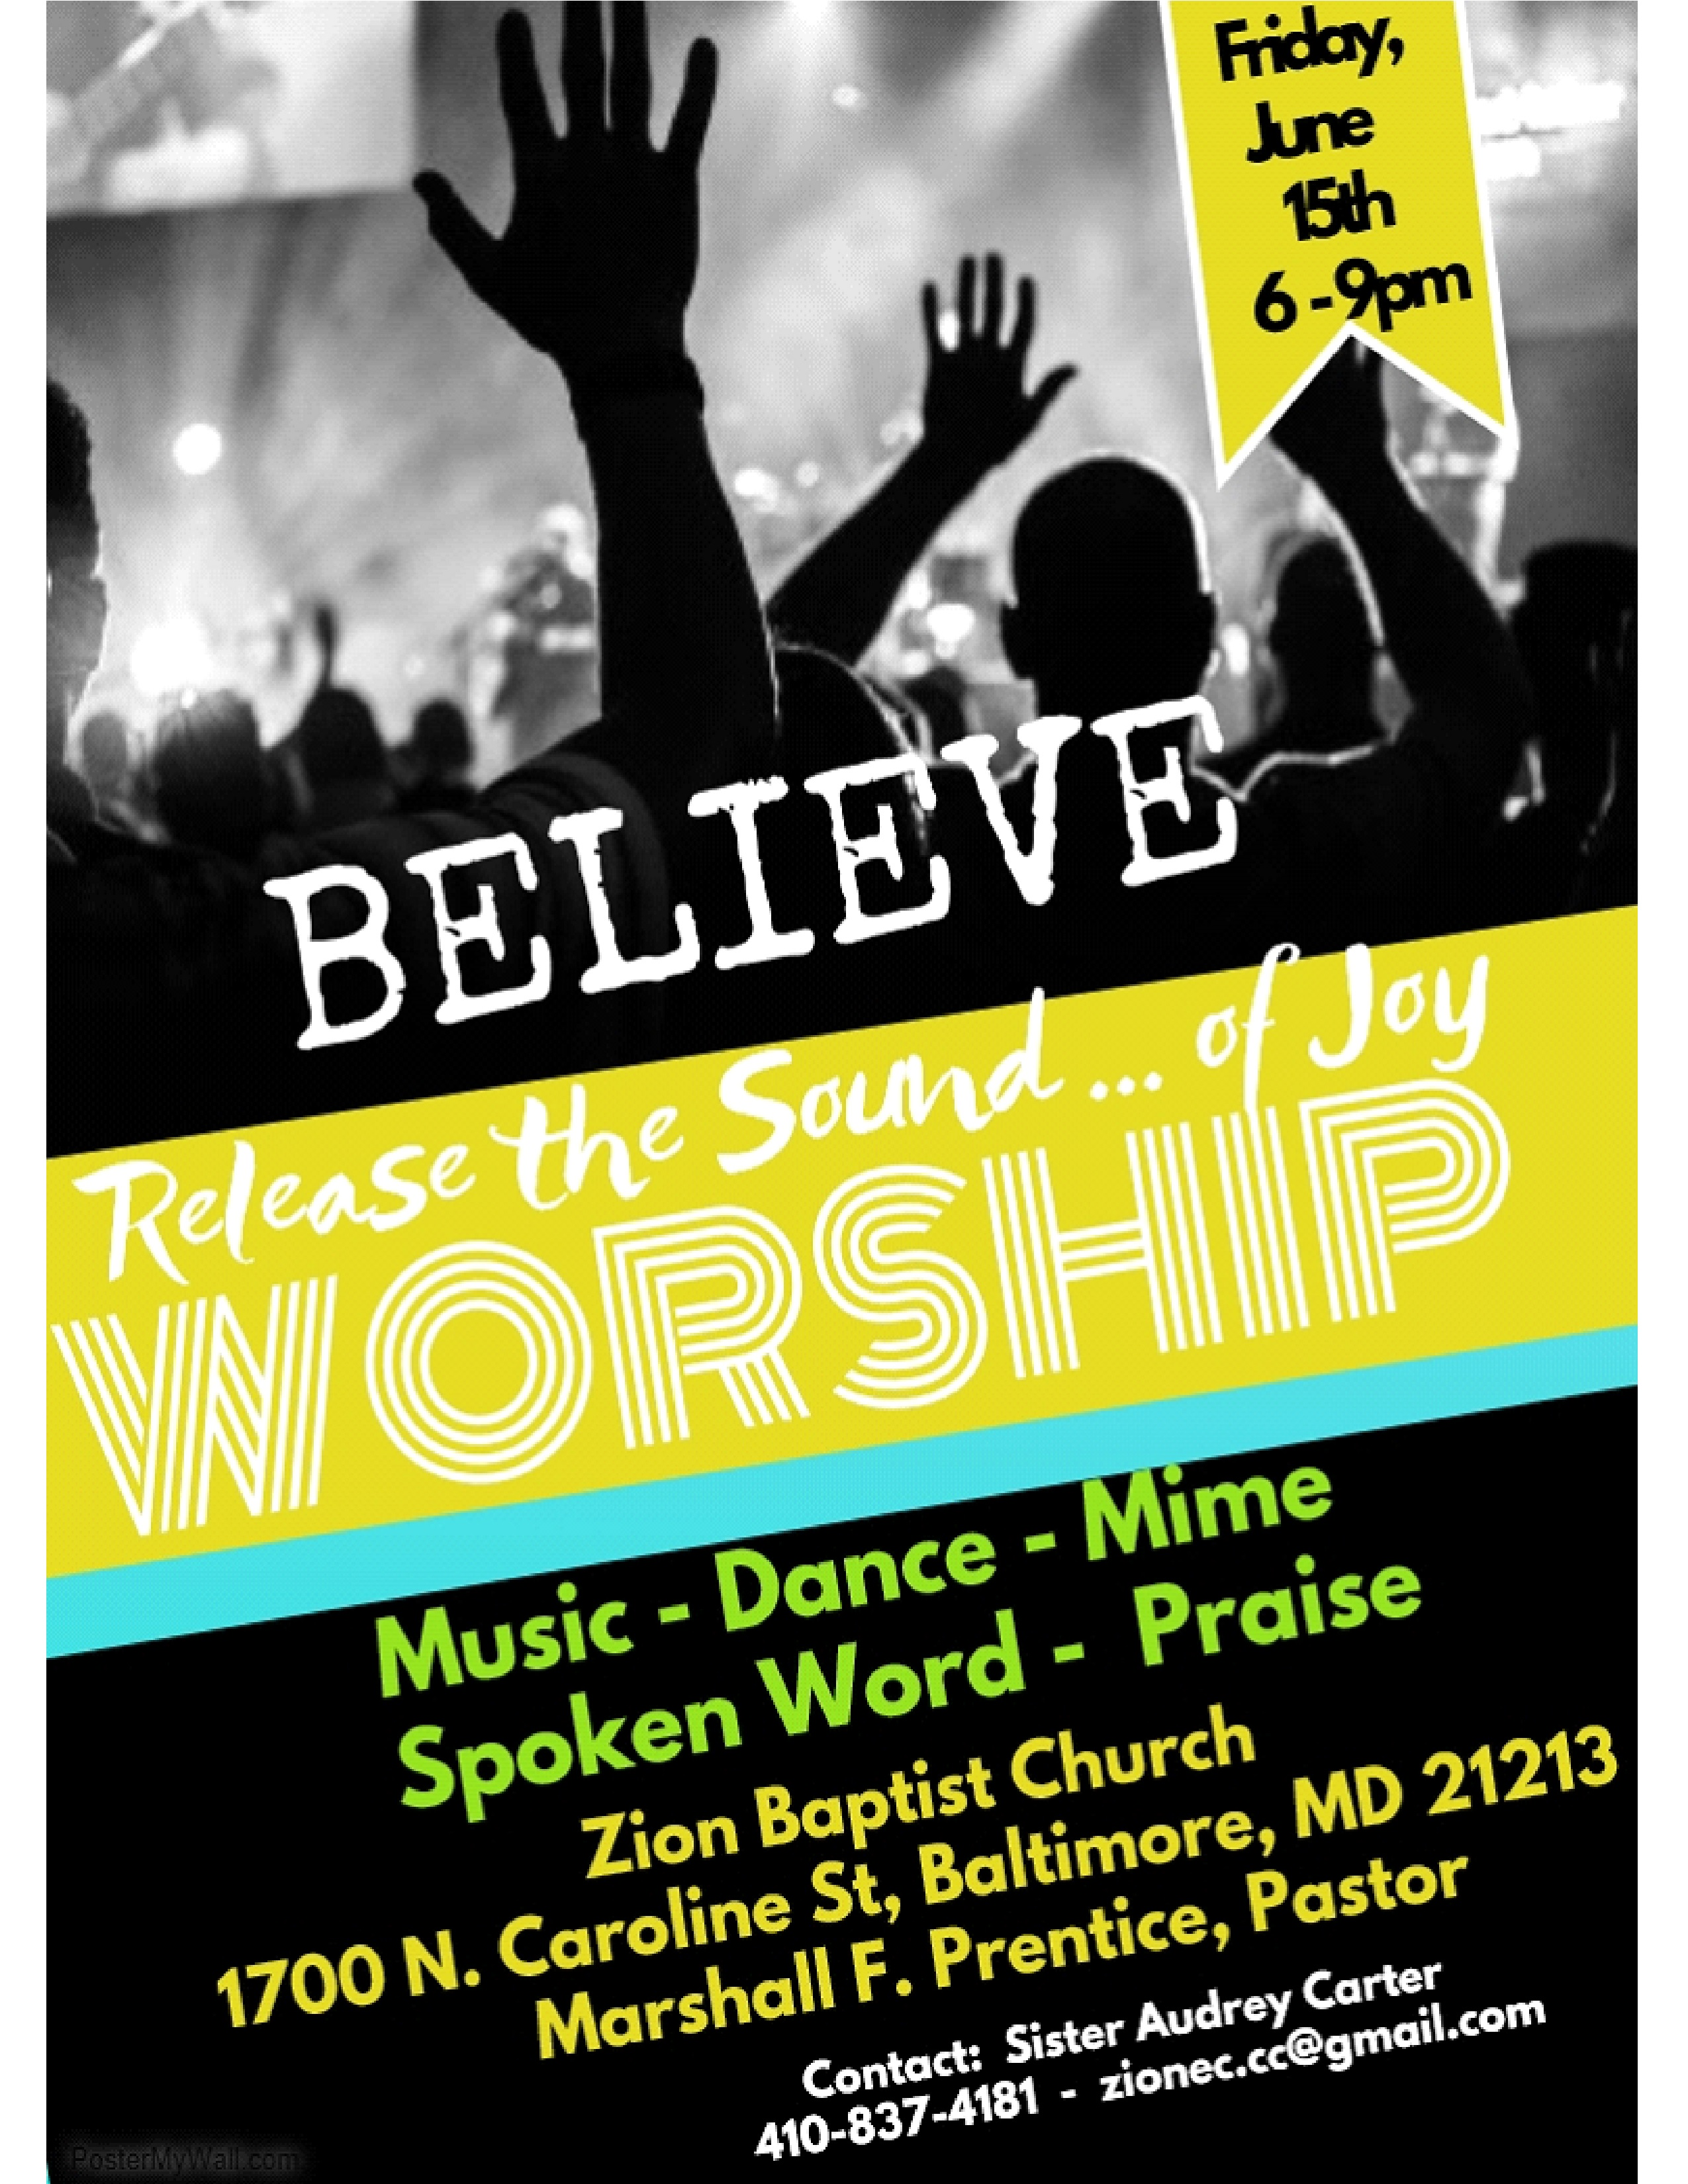 Praise and worship songs about joy